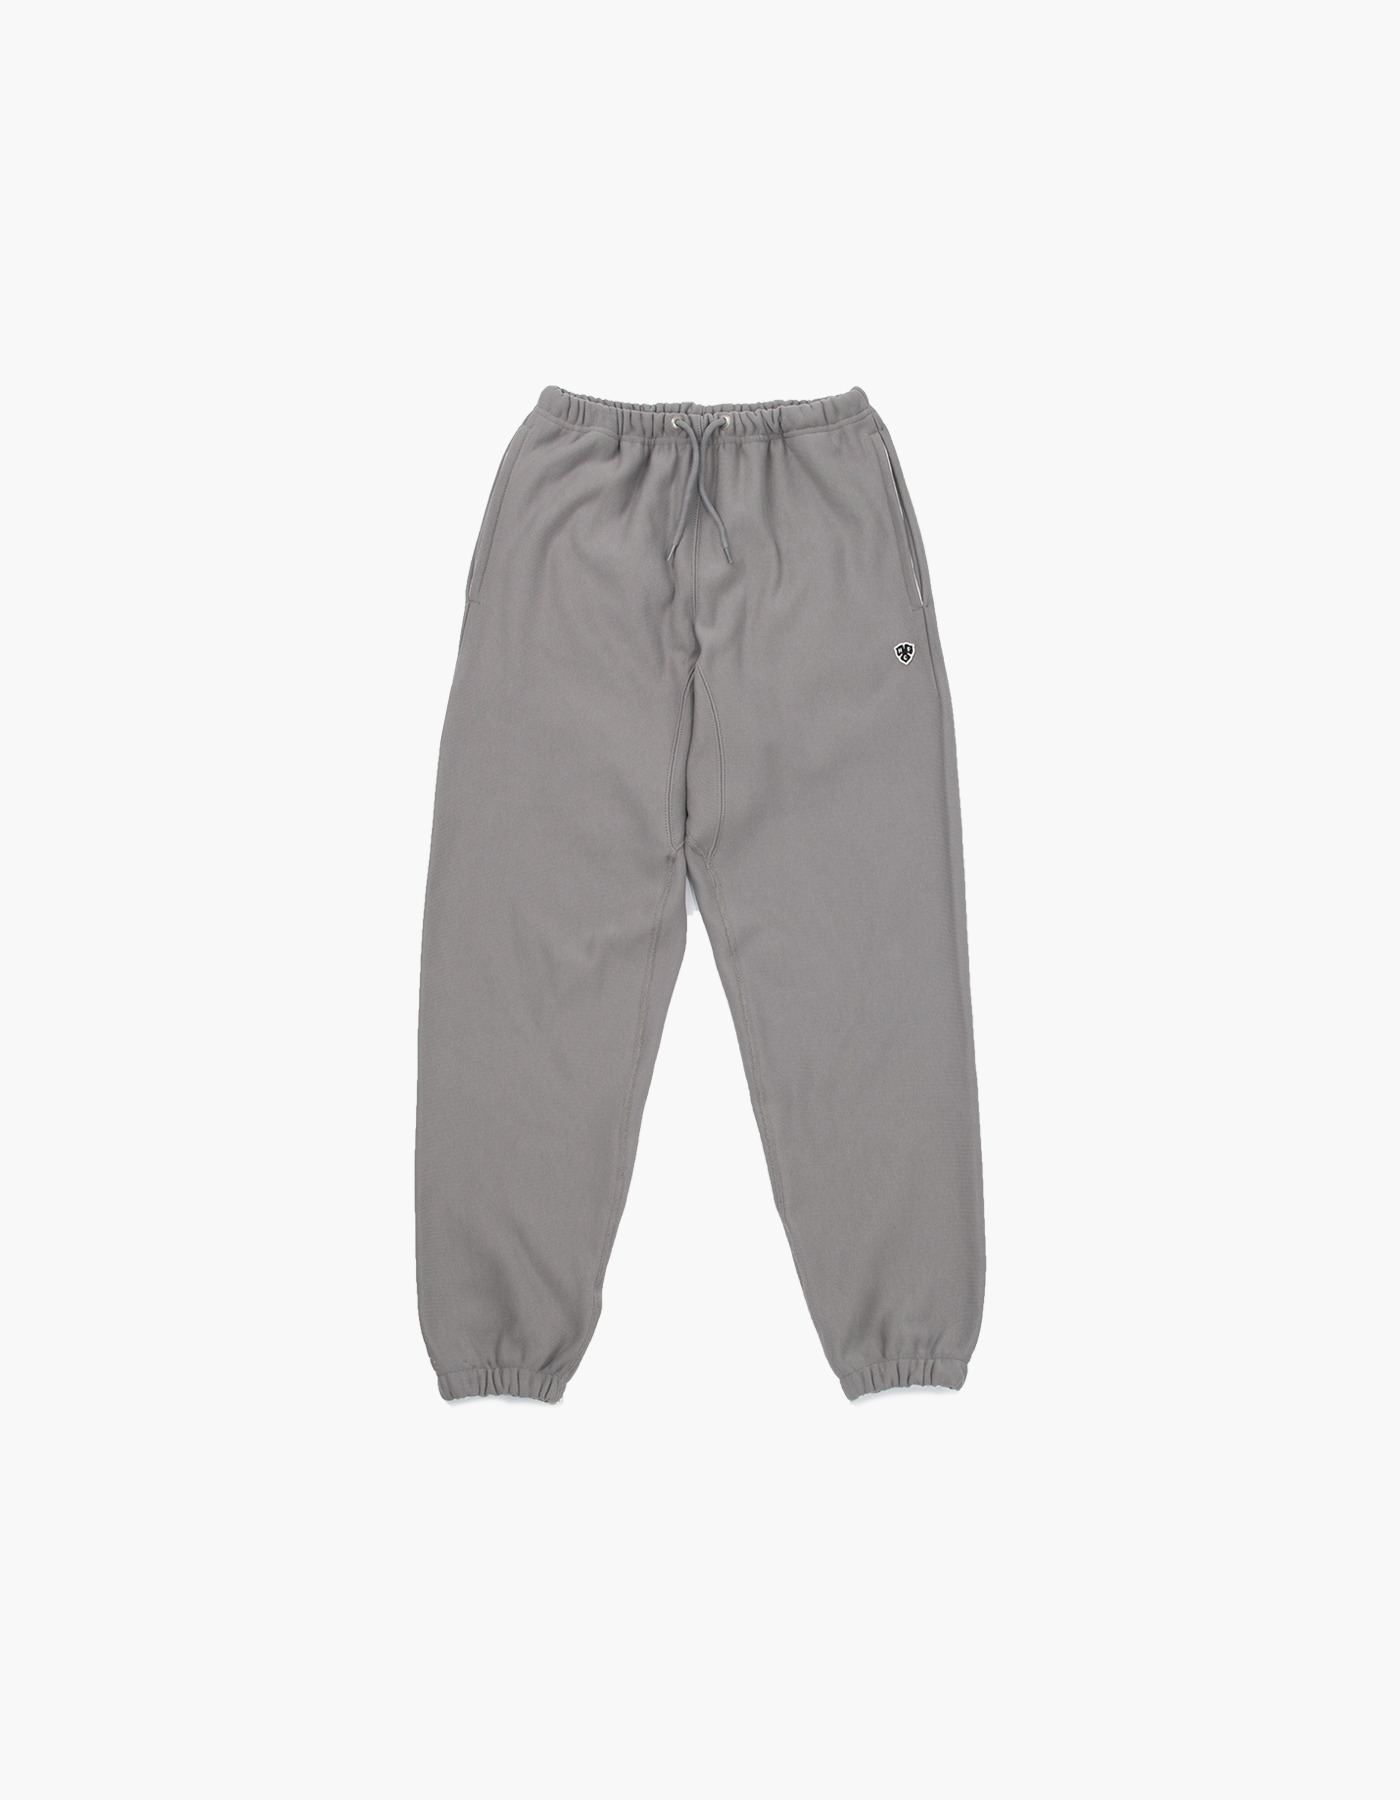 231 HFC SWEATPANTS / GREY